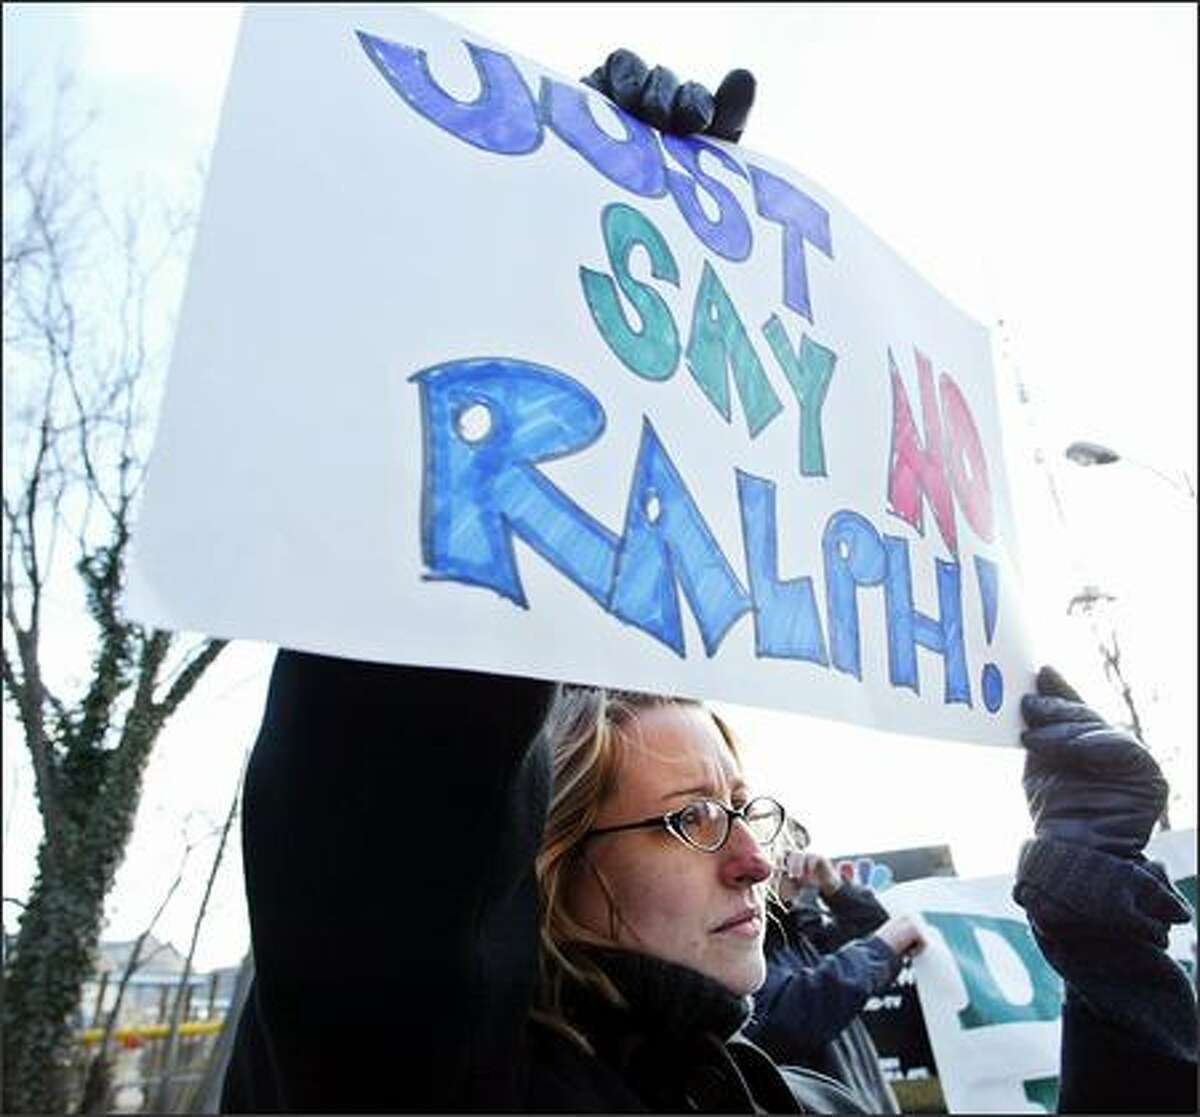 Protestors against Ralph Nader running for the presidency and Nader supporters stage a rally outside the NBC televison station in Bethesda, Md., Sunday. Consumer advocate Nader announced Sunday he will run again for the presidency, declaring that Washington has become